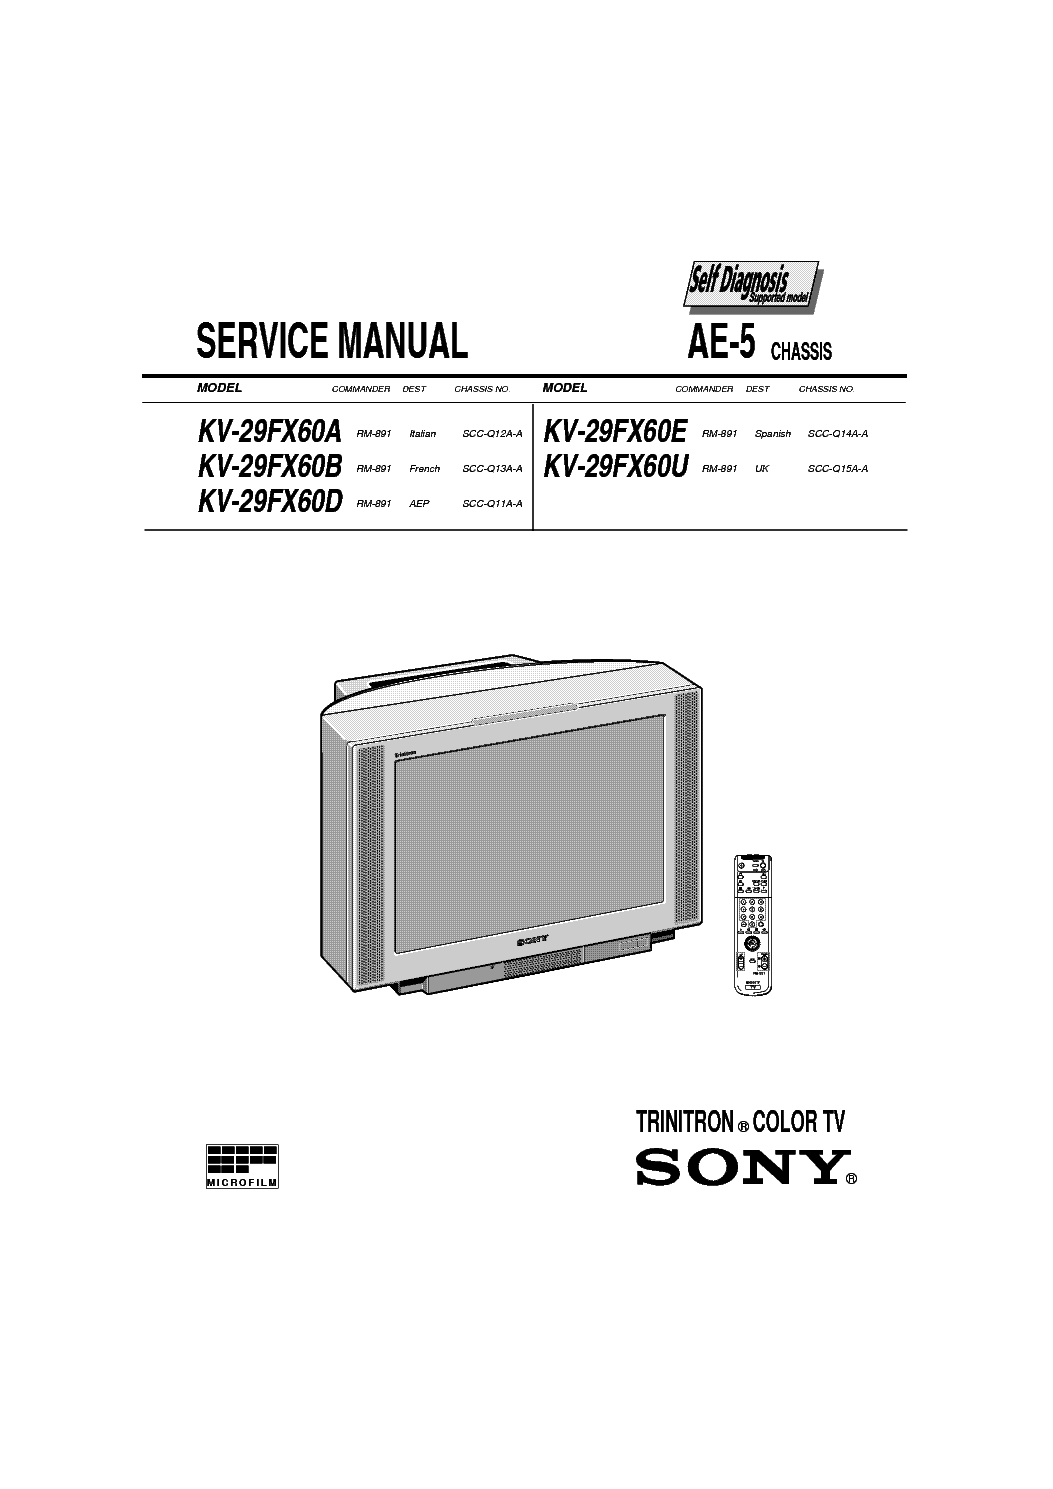 SONY AE-5 service manual (1st page)